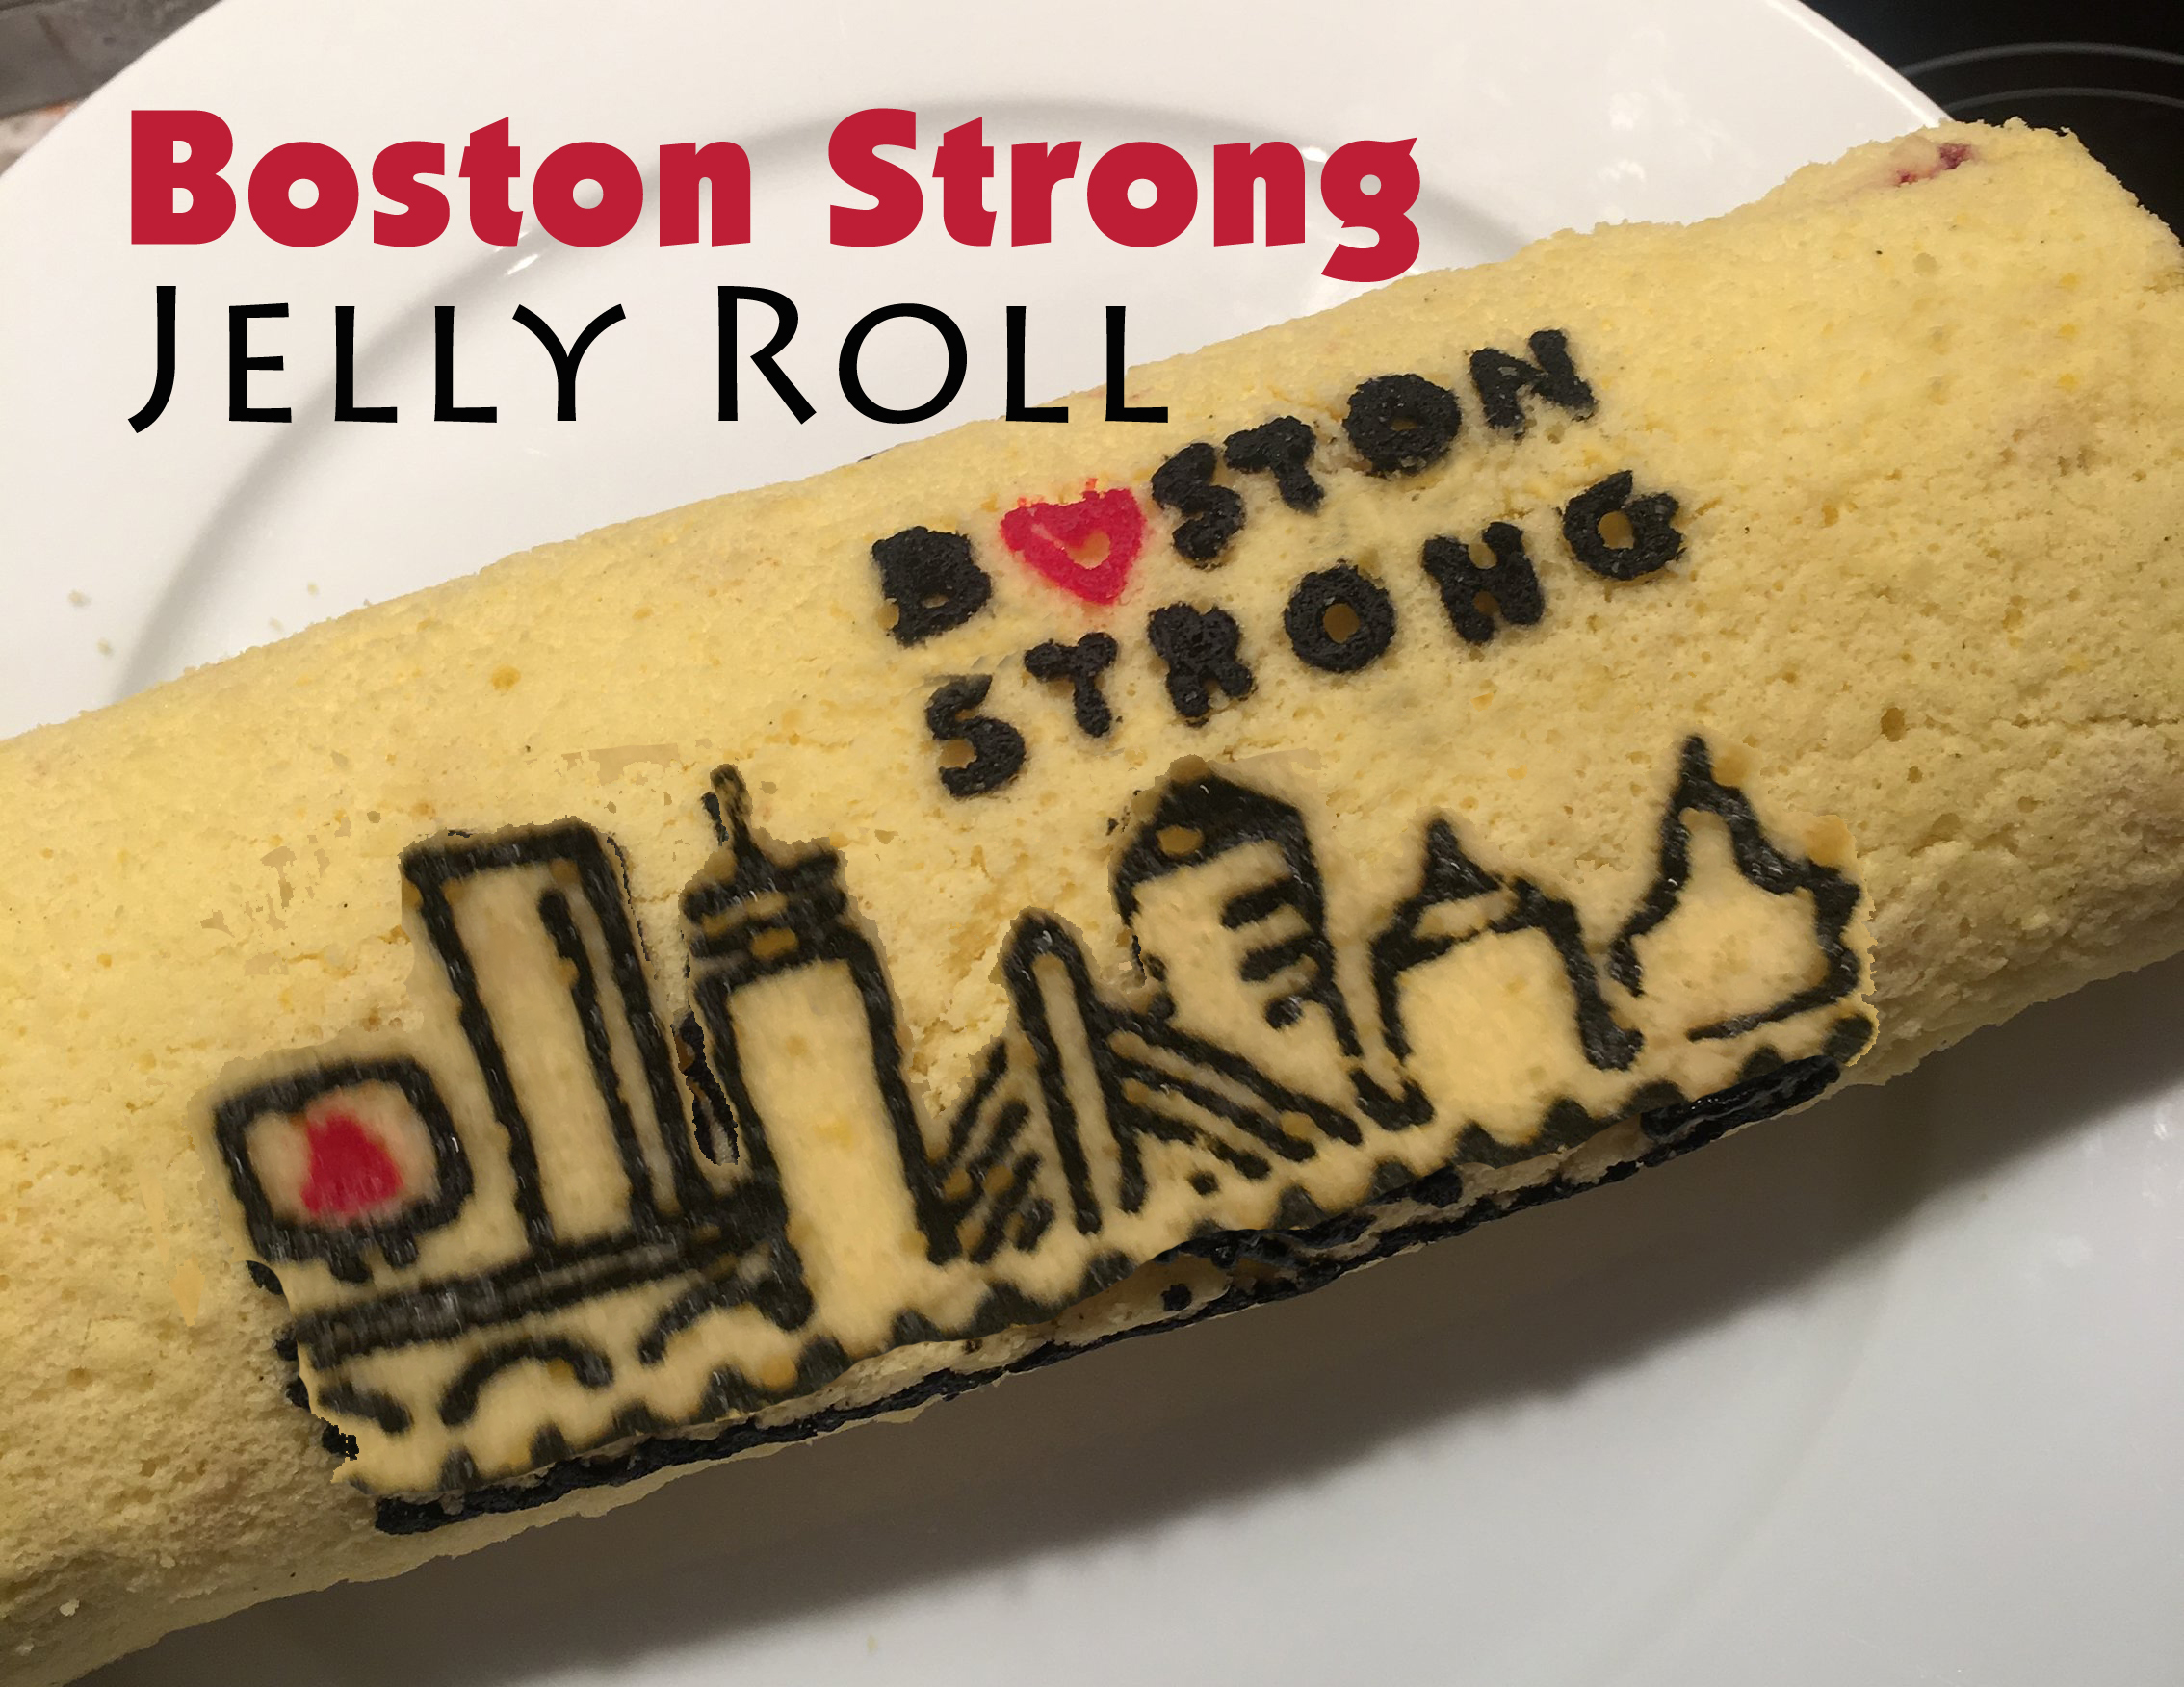 boston strong jelly roll The Perfect Details image.jpg